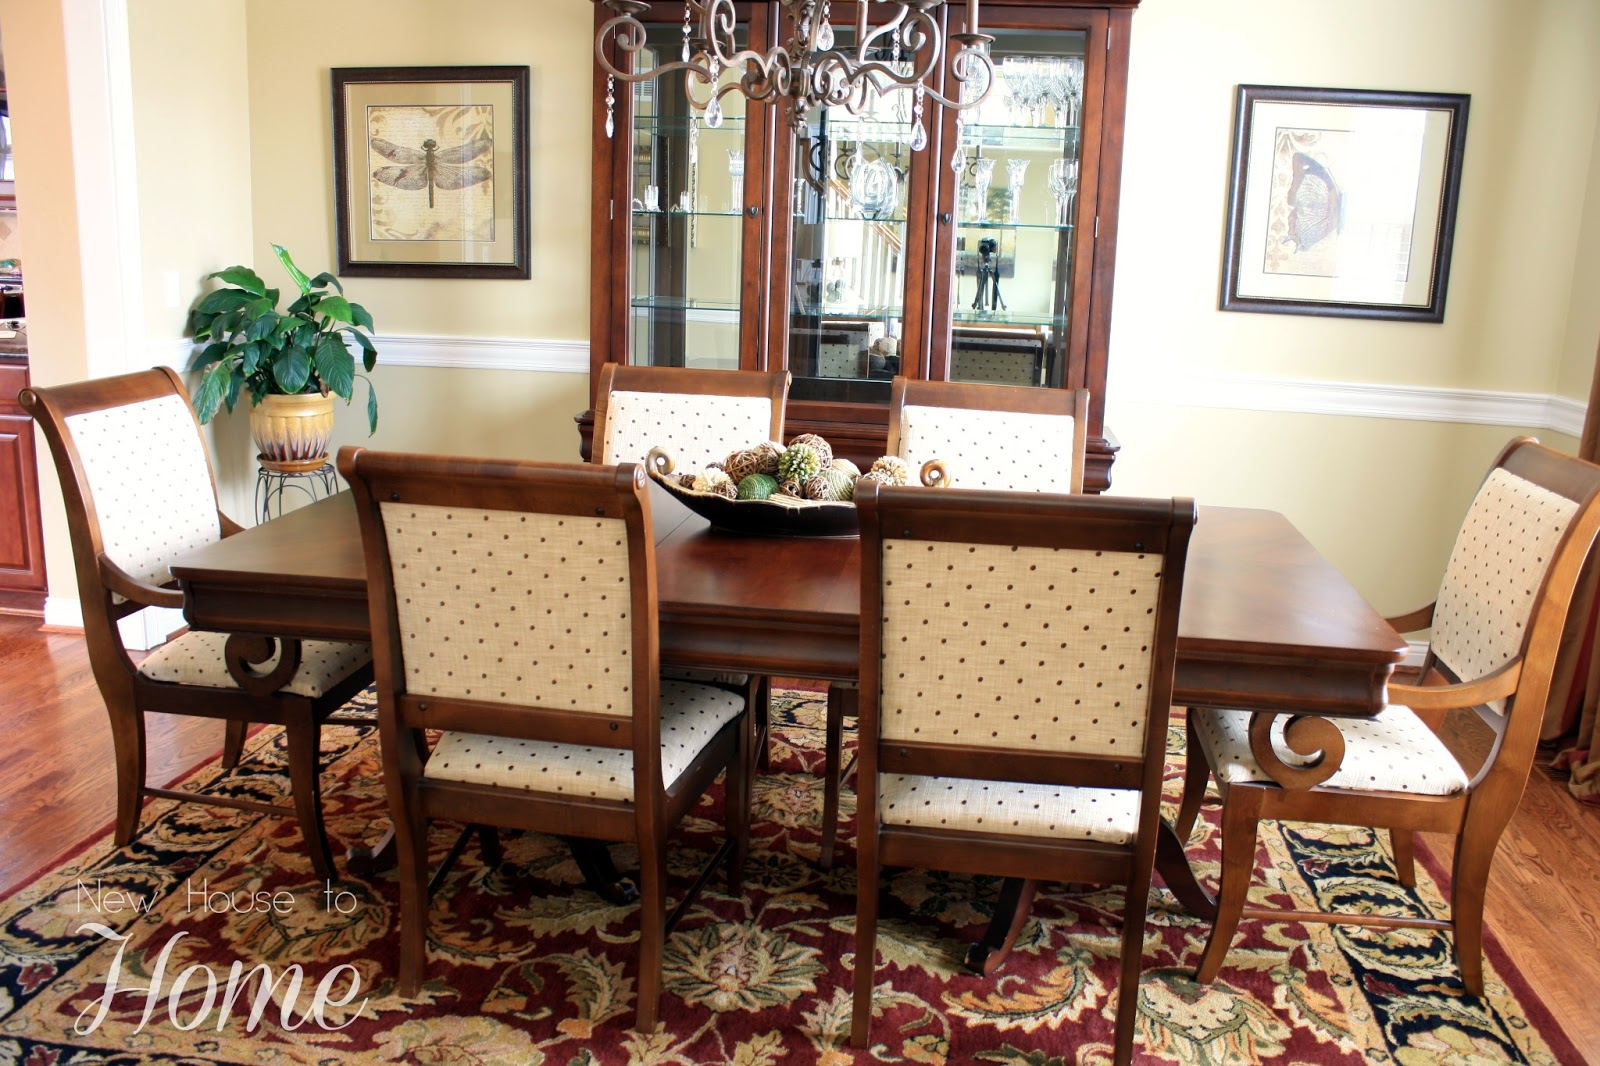 New House to Home: How I Recovered My Dining Room Chairs